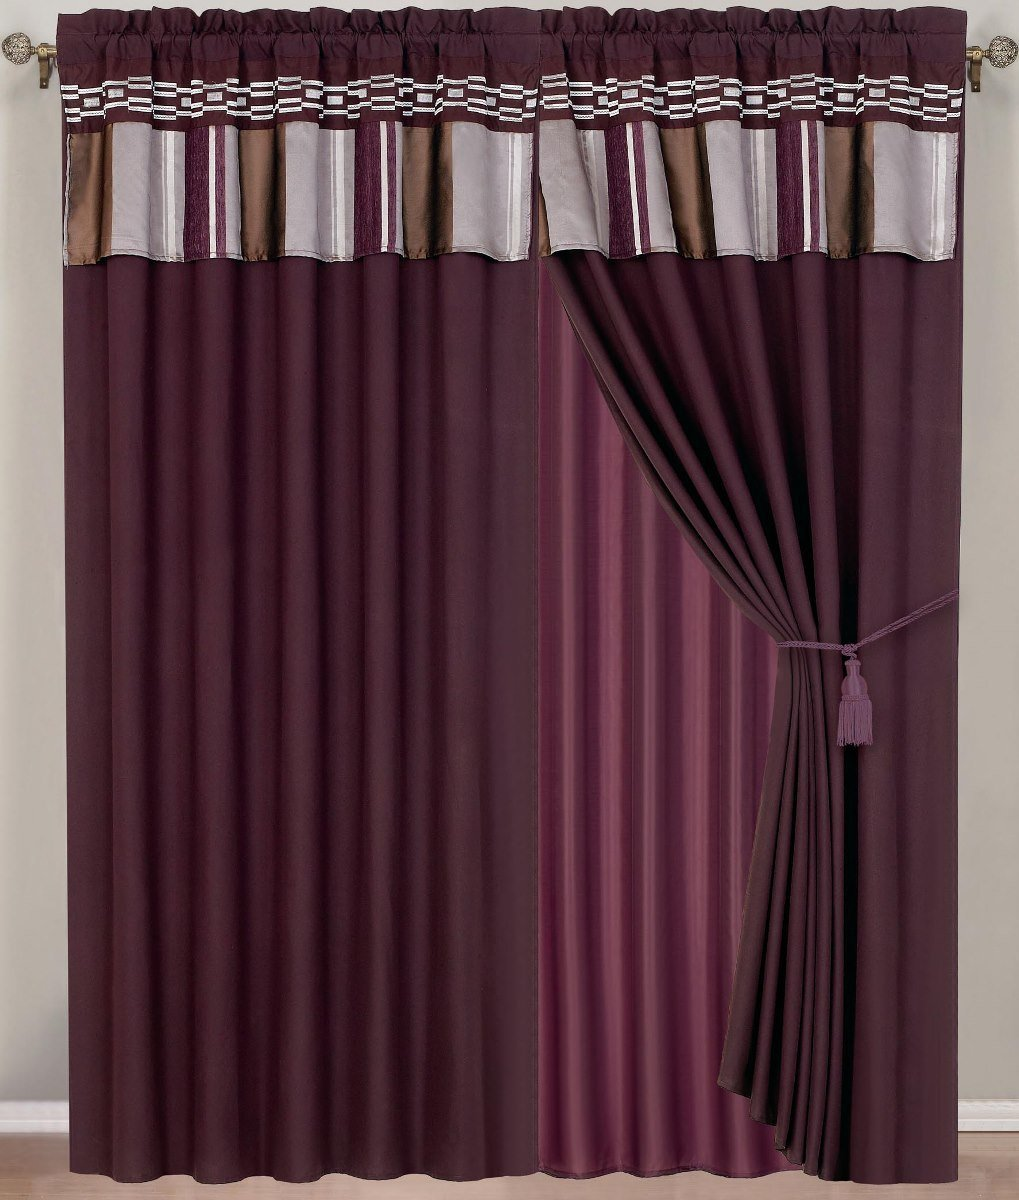 Purple Valance Curtains Solid Purple Color Valance In Many Lengths Custom Size Solid Purple